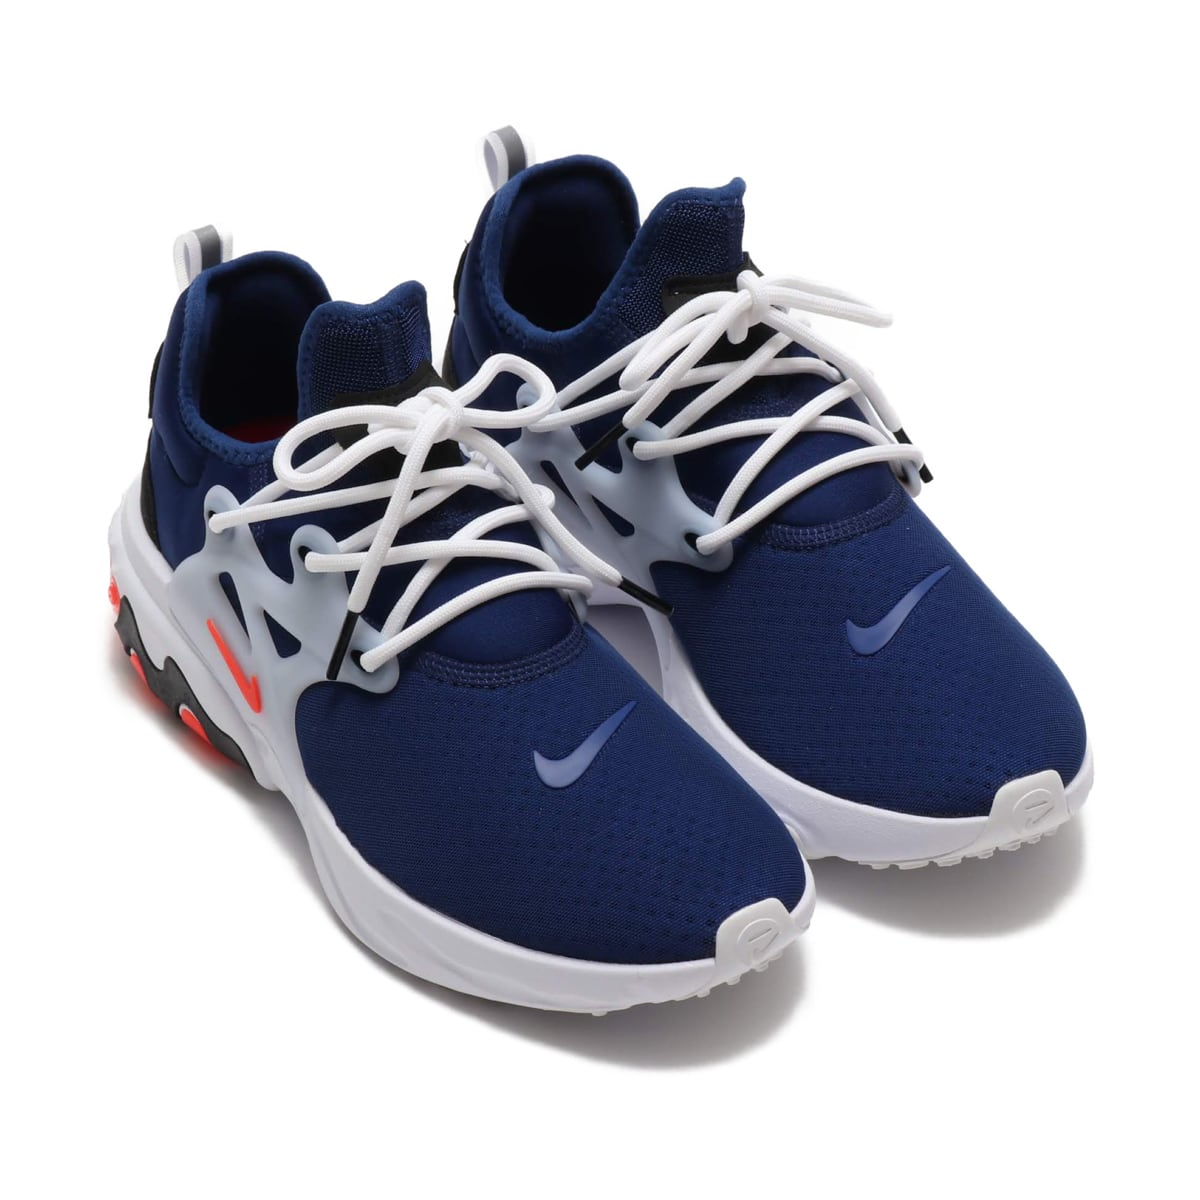 NIKE REACT PRESTO BLUE VOID/HABANERO-TM RD-BLACK 19SU-S_photo_large